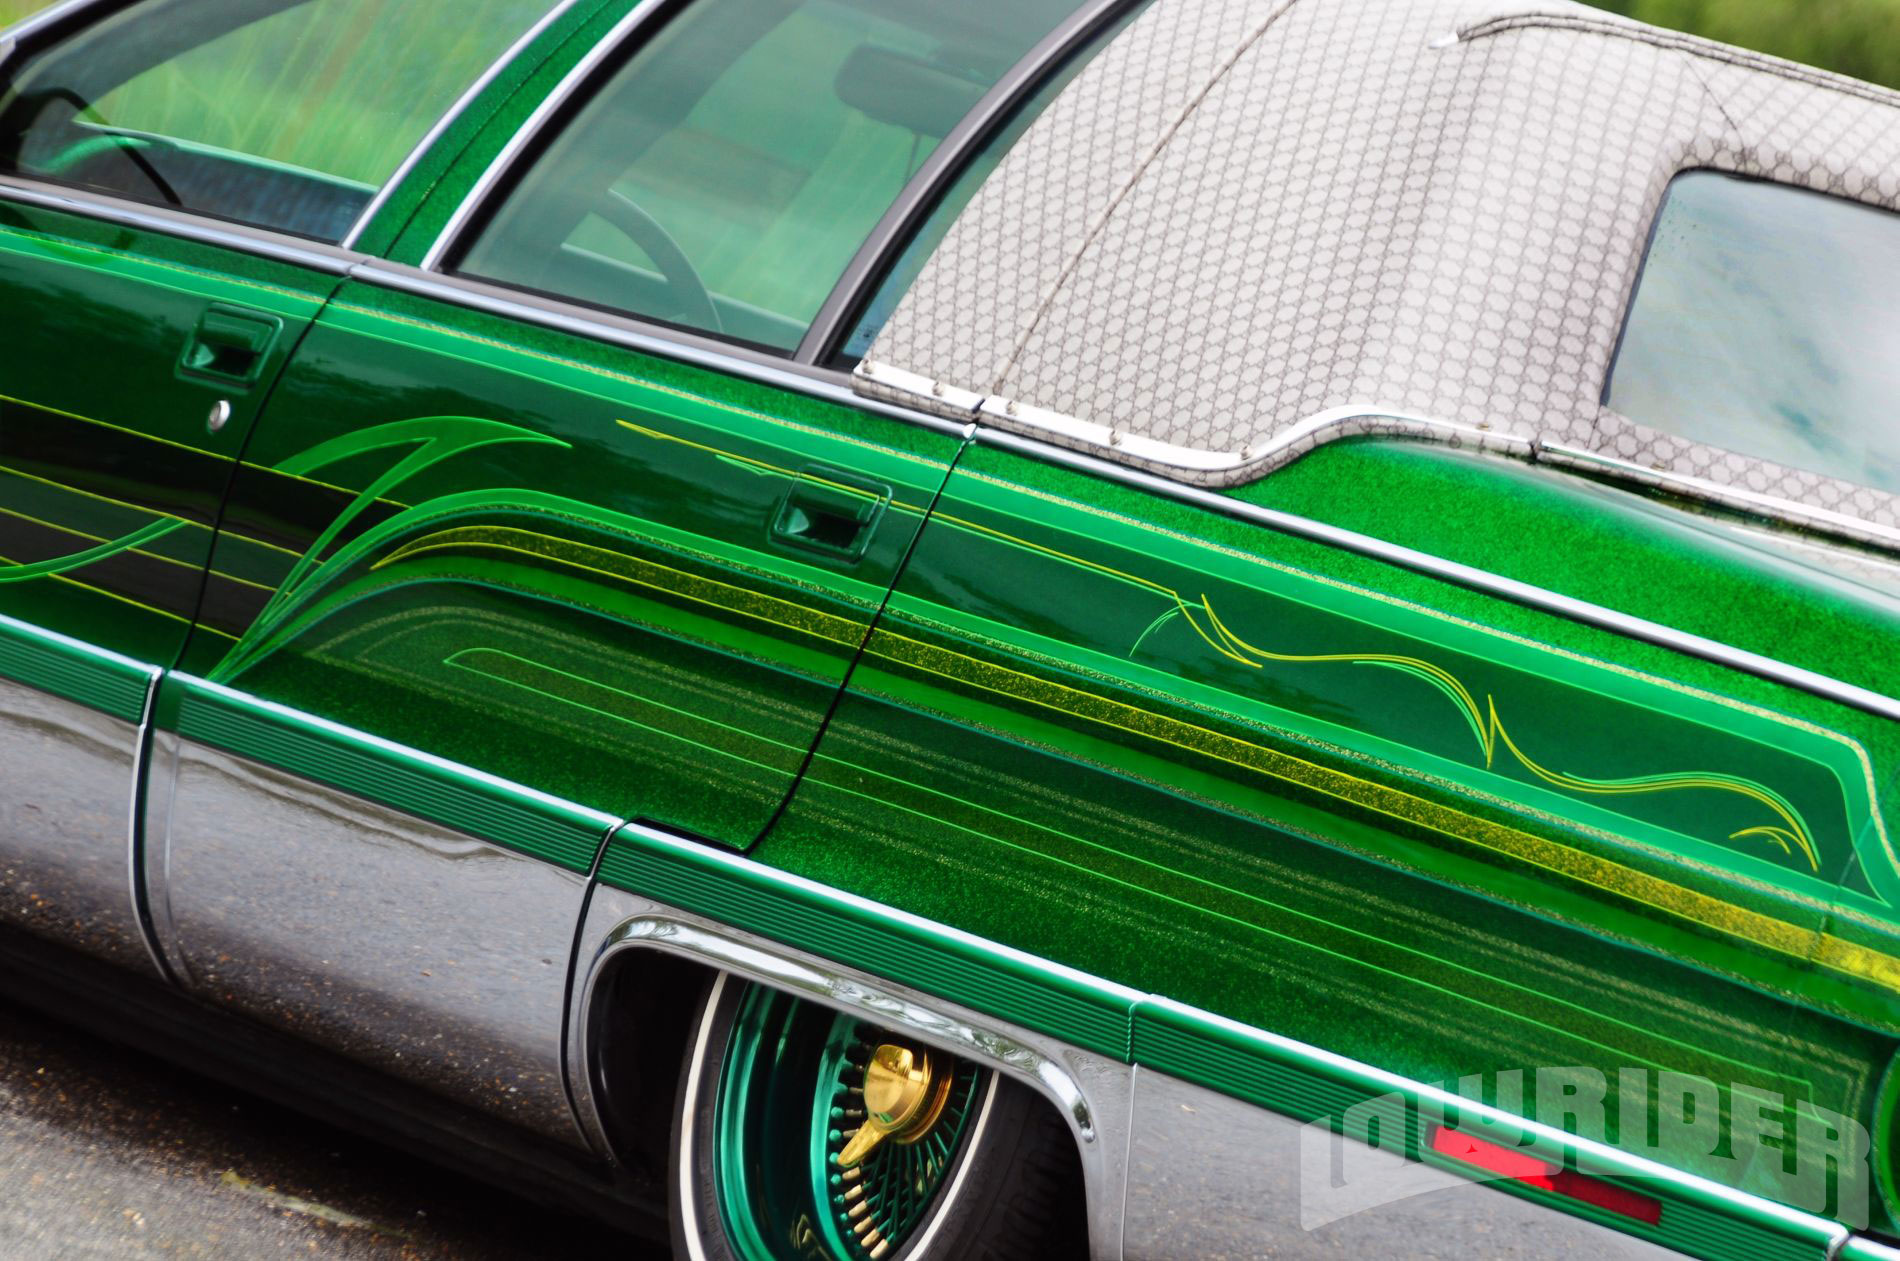 Lrmp O Cadillac Fleetwood Custom Paint